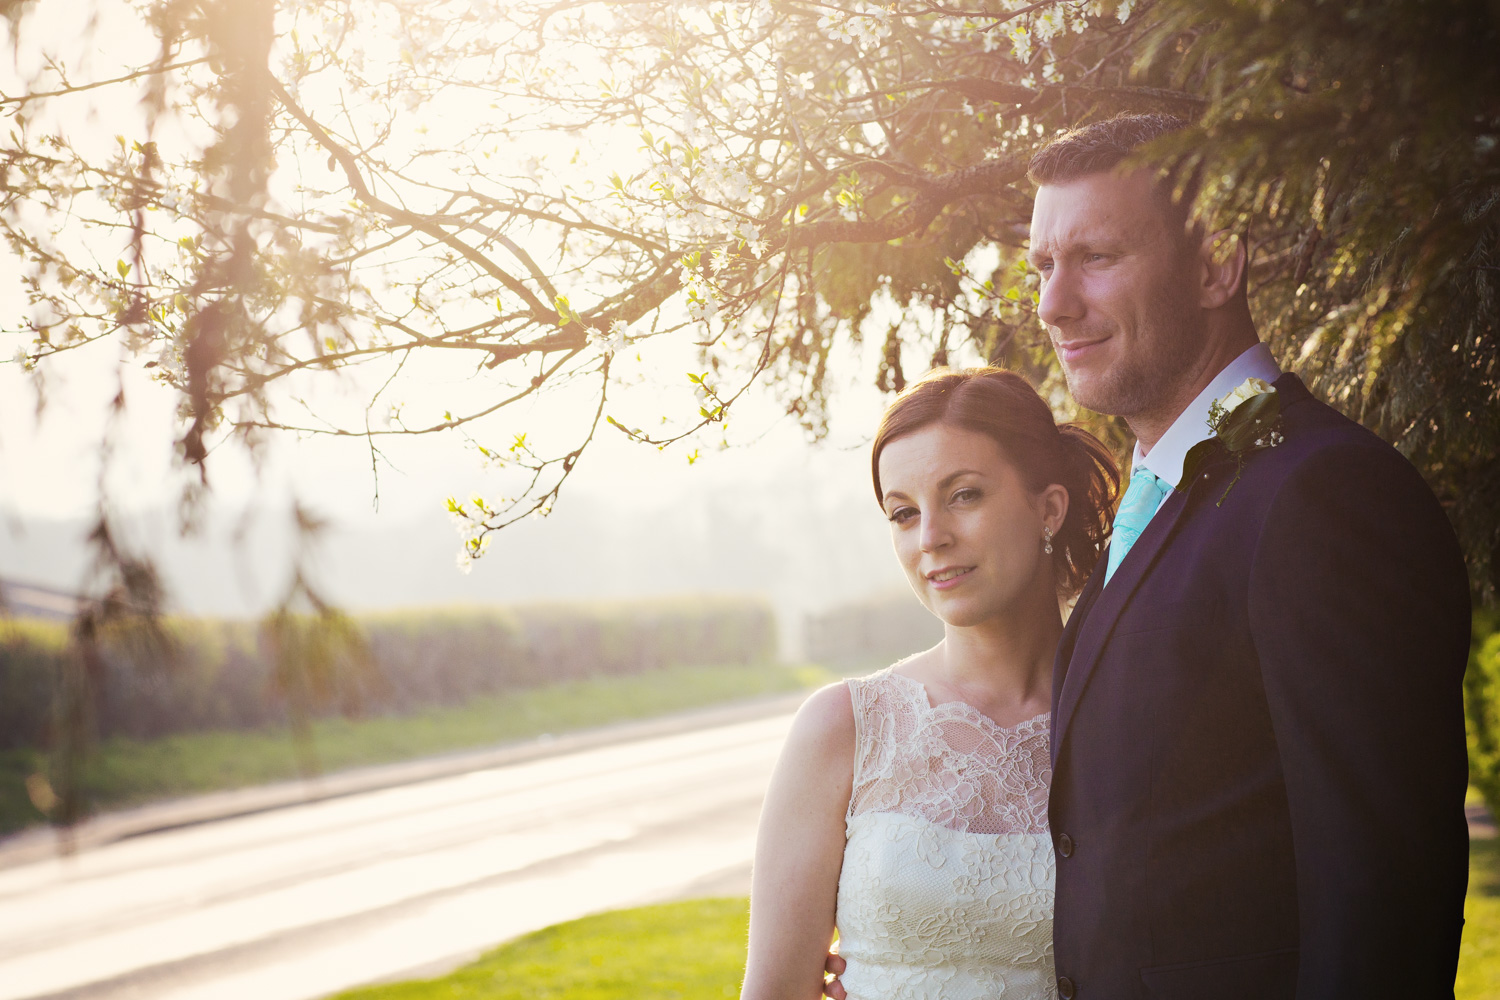 South-Wales-Wedding-Photographer-Mark-Barnes-Newport-The-old-barn-inn-Ginette-and-Lewis-blog-60.jpg